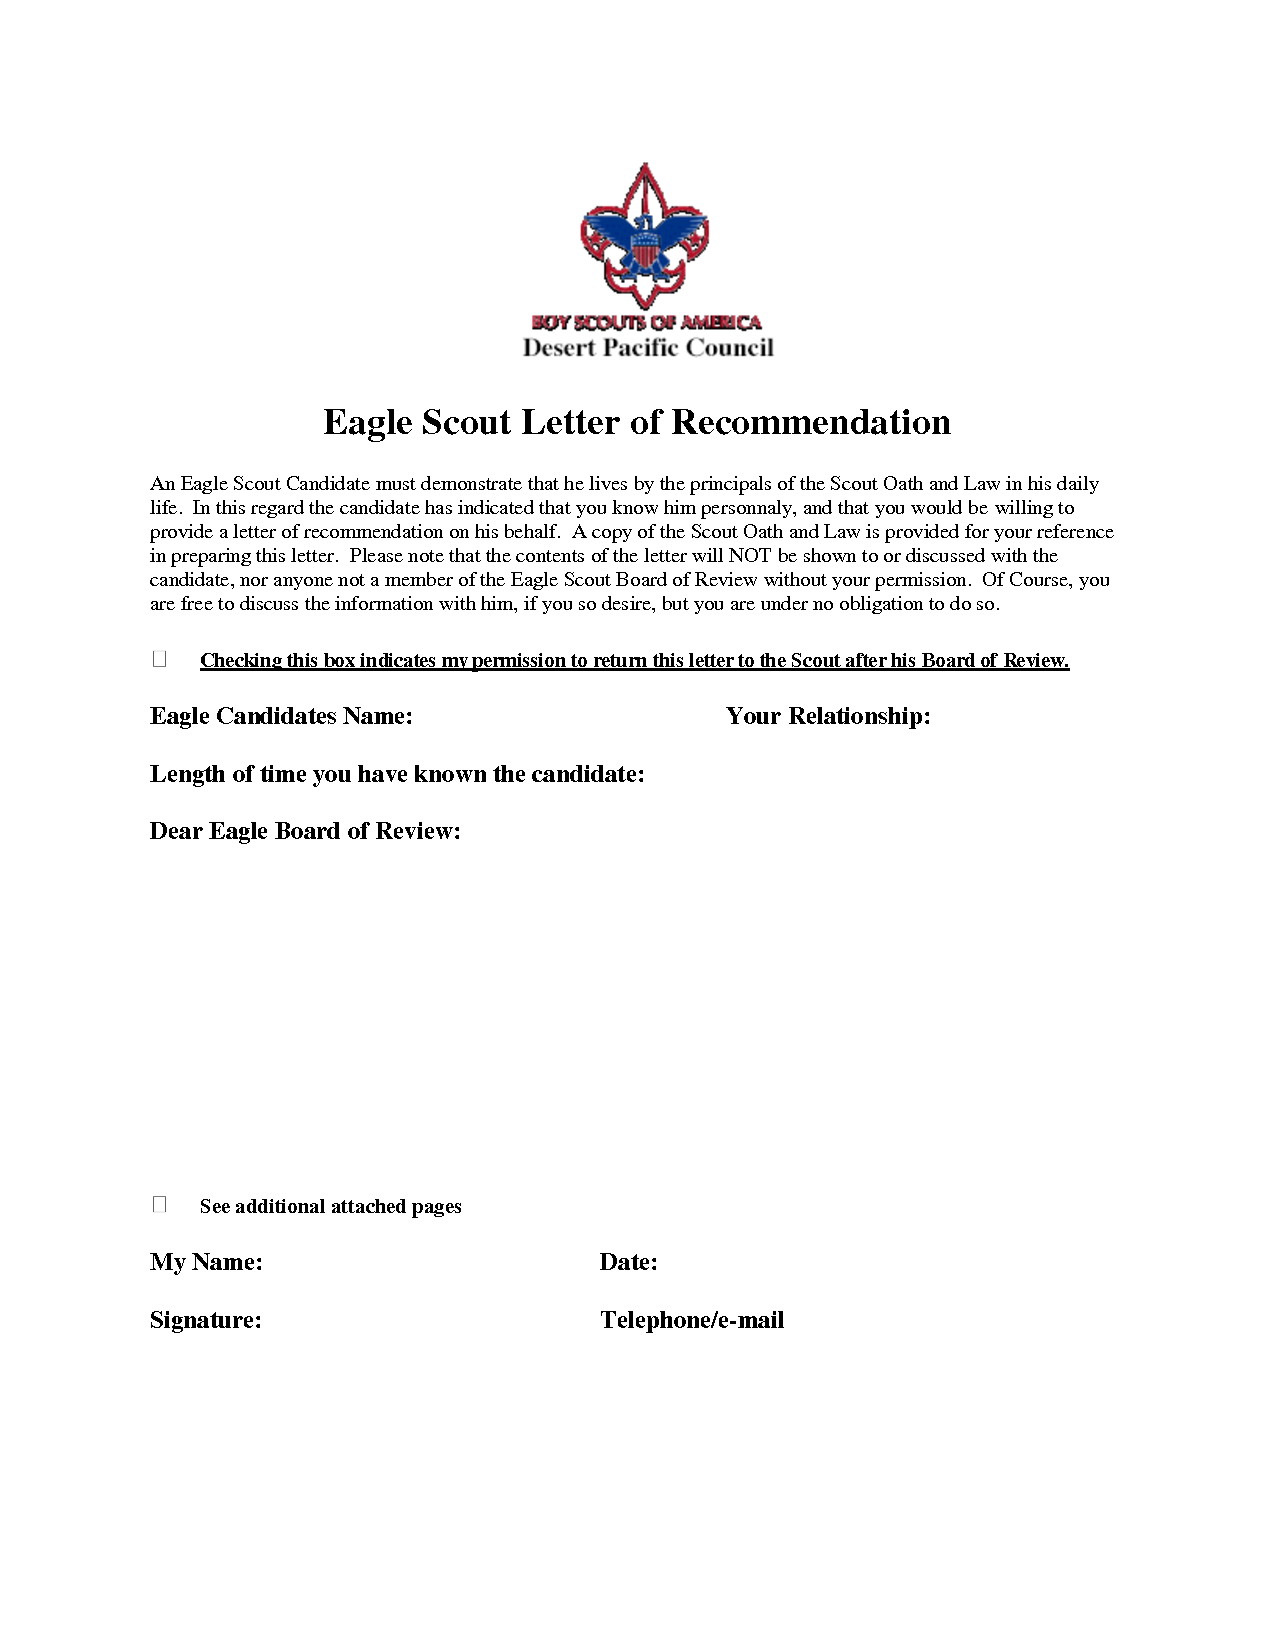 Eagle scout recommendation letter sample eagle scout letters of eagle scout recommendation letter sample eagle scout letters of recommendation template best template expocarfo Choice Image